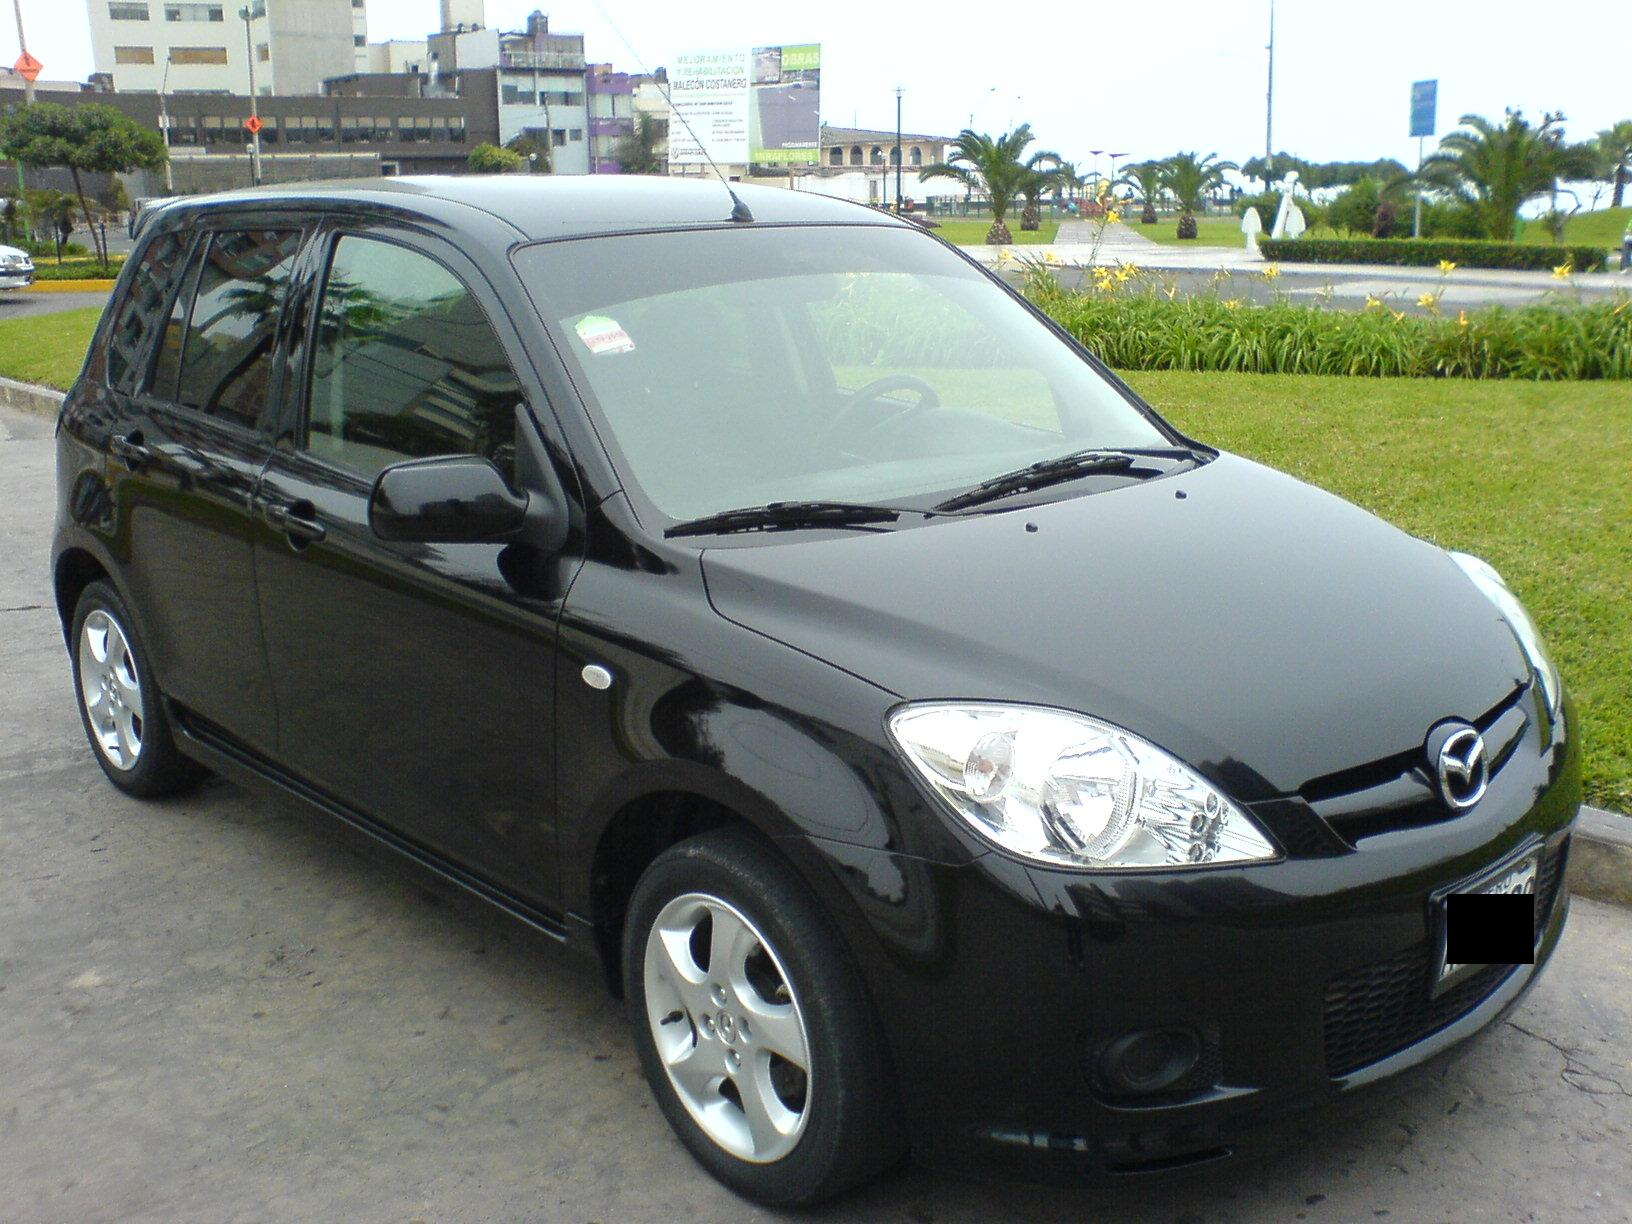 mazda demio 2007 review amazing pictures and images look at the car. Black Bedroom Furniture Sets. Home Design Ideas